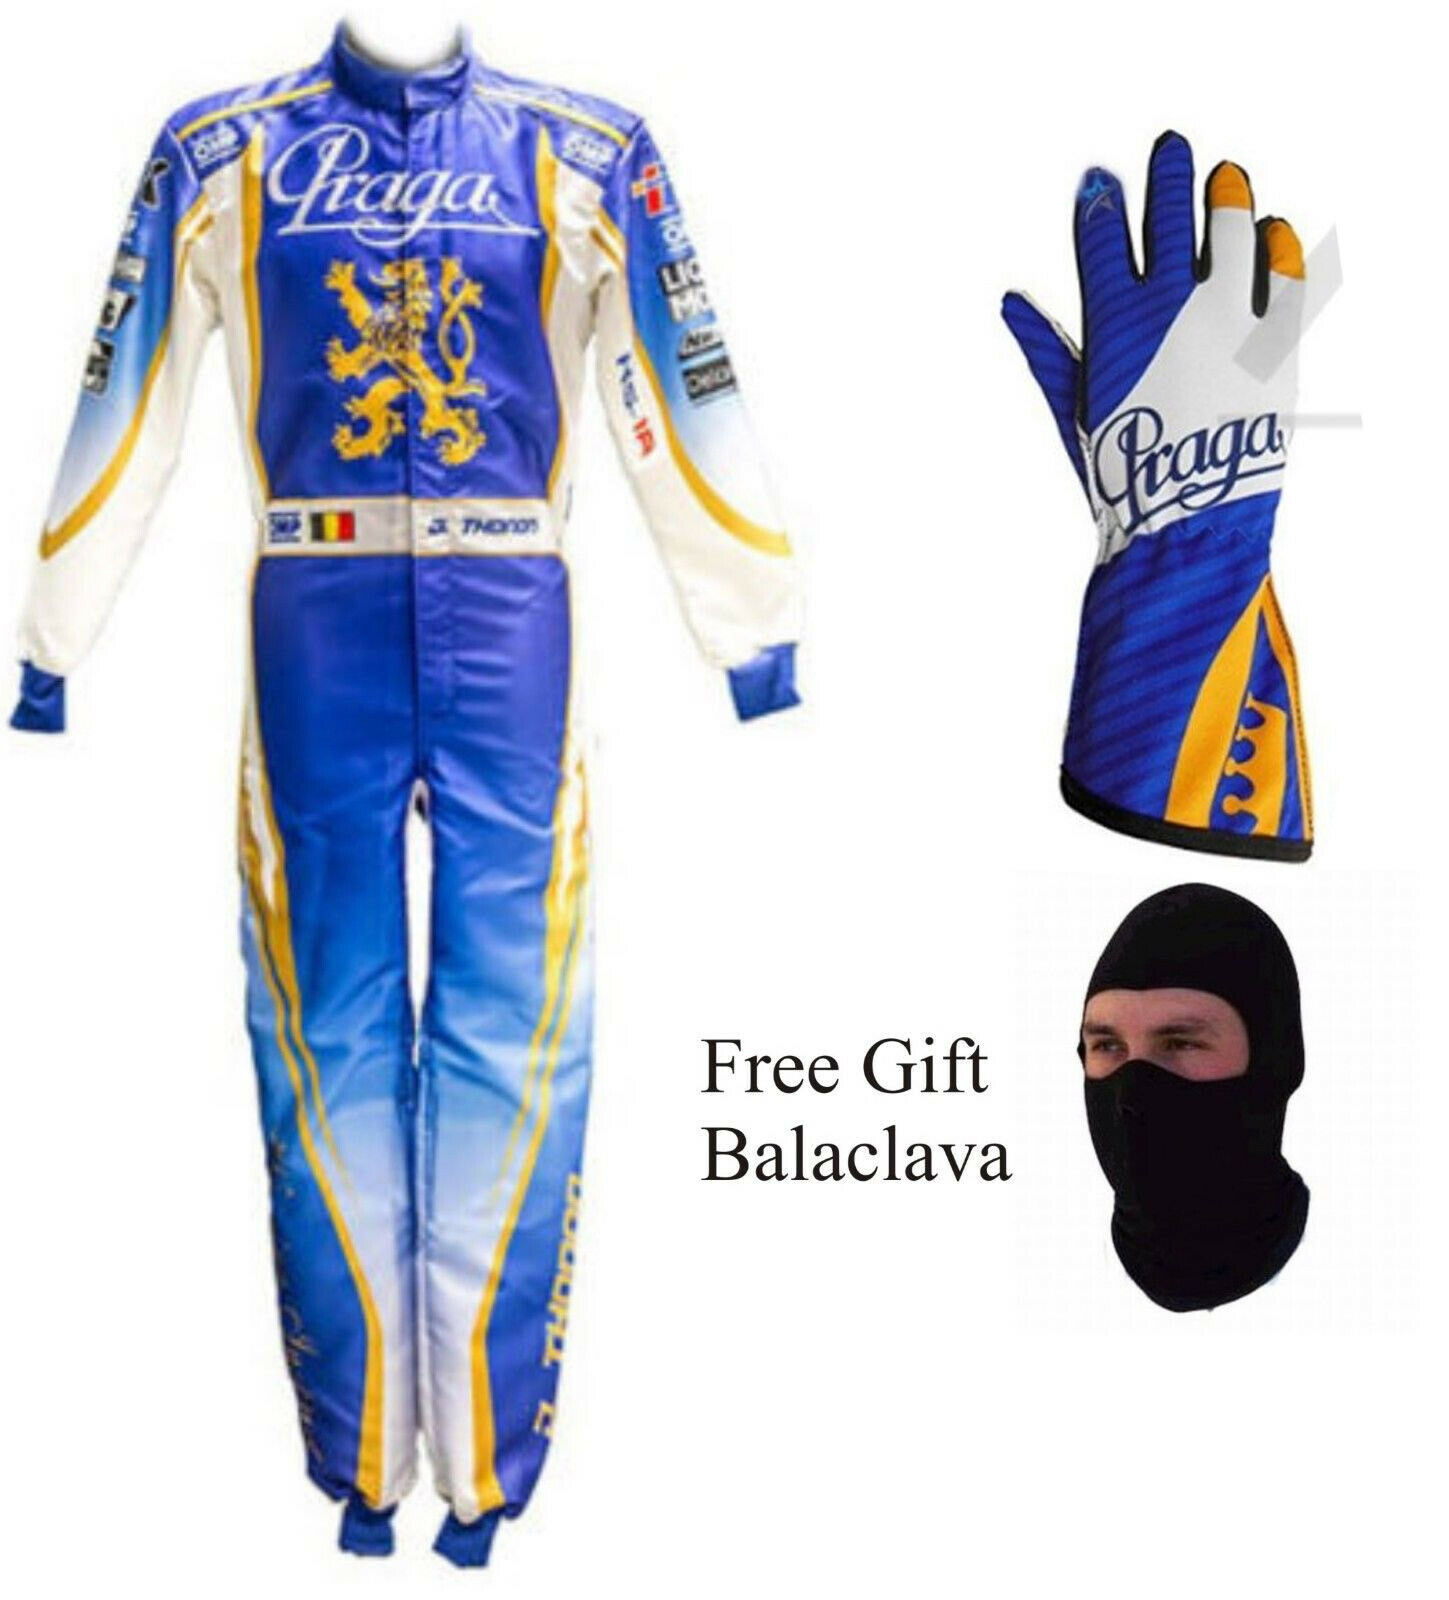 Kart  racing suit go karting Praga style kart suit by FR1 With g s-ALL SIZES  enjoying your shopping